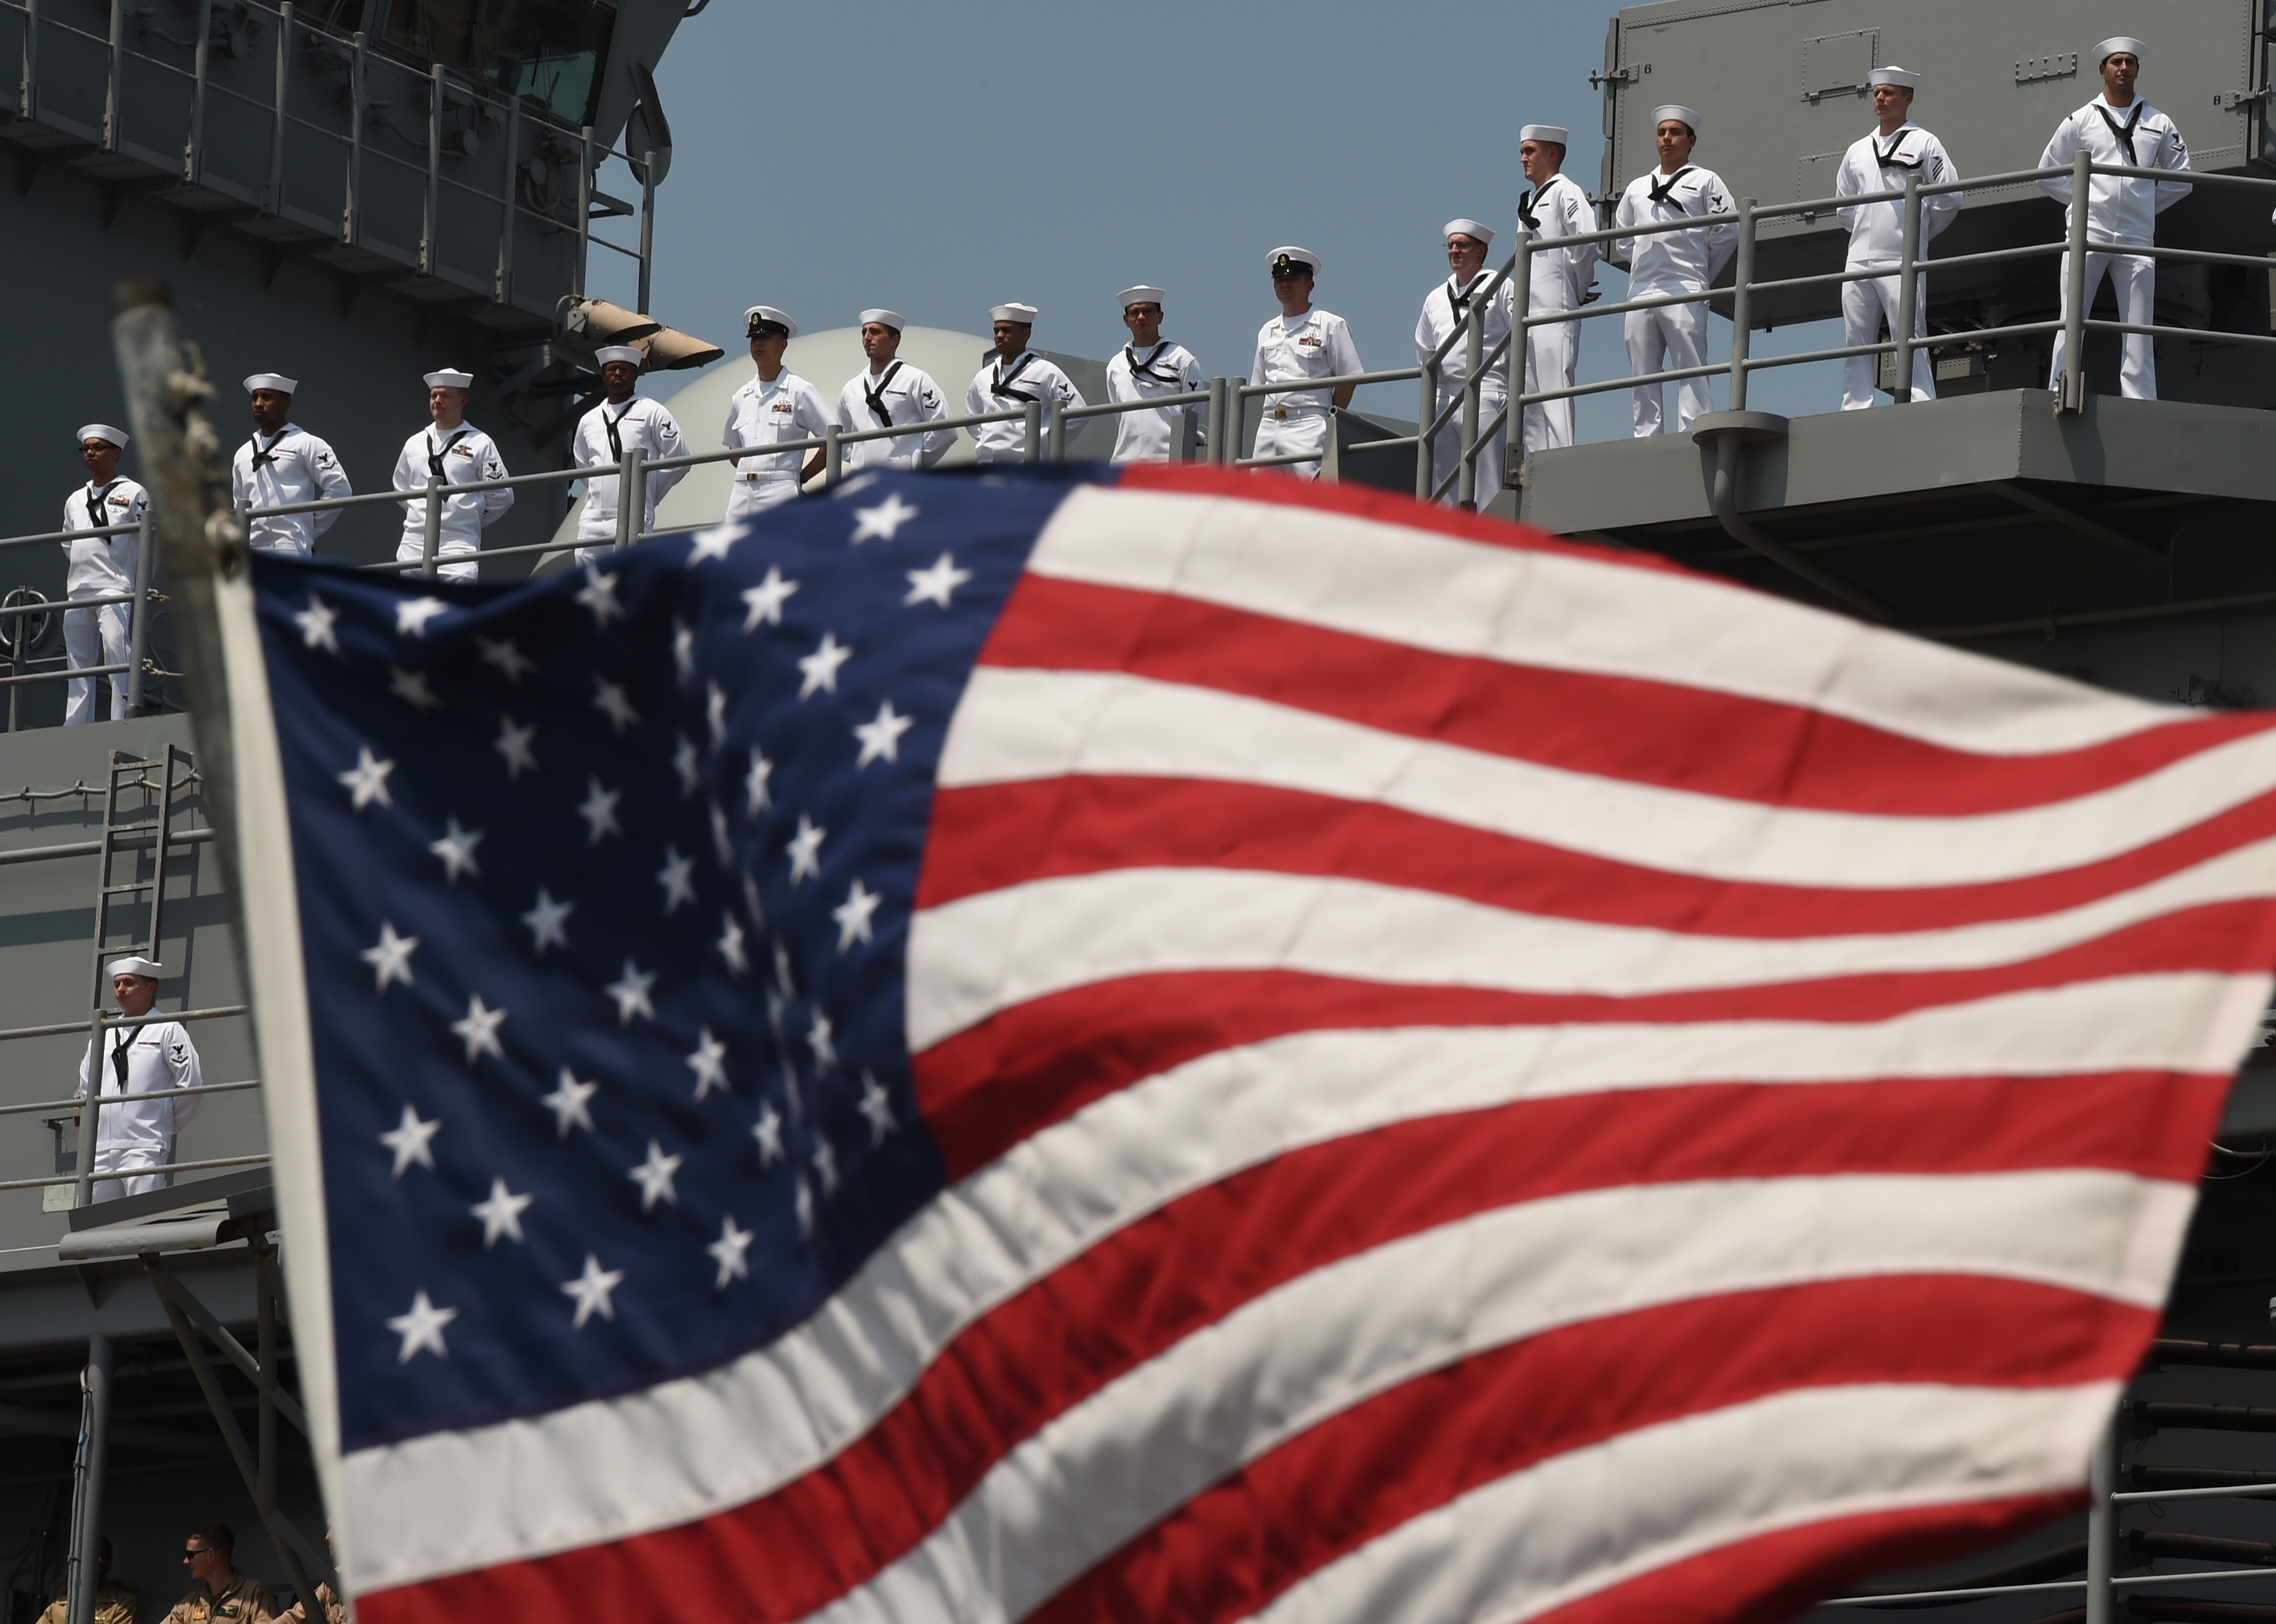 The US Flag blows in the wind as sailors and marines stand on the deck of the USS Bataan as it arrives into Pier 88  during the 'Parade of Ships' in New York, on May 25, 2016.